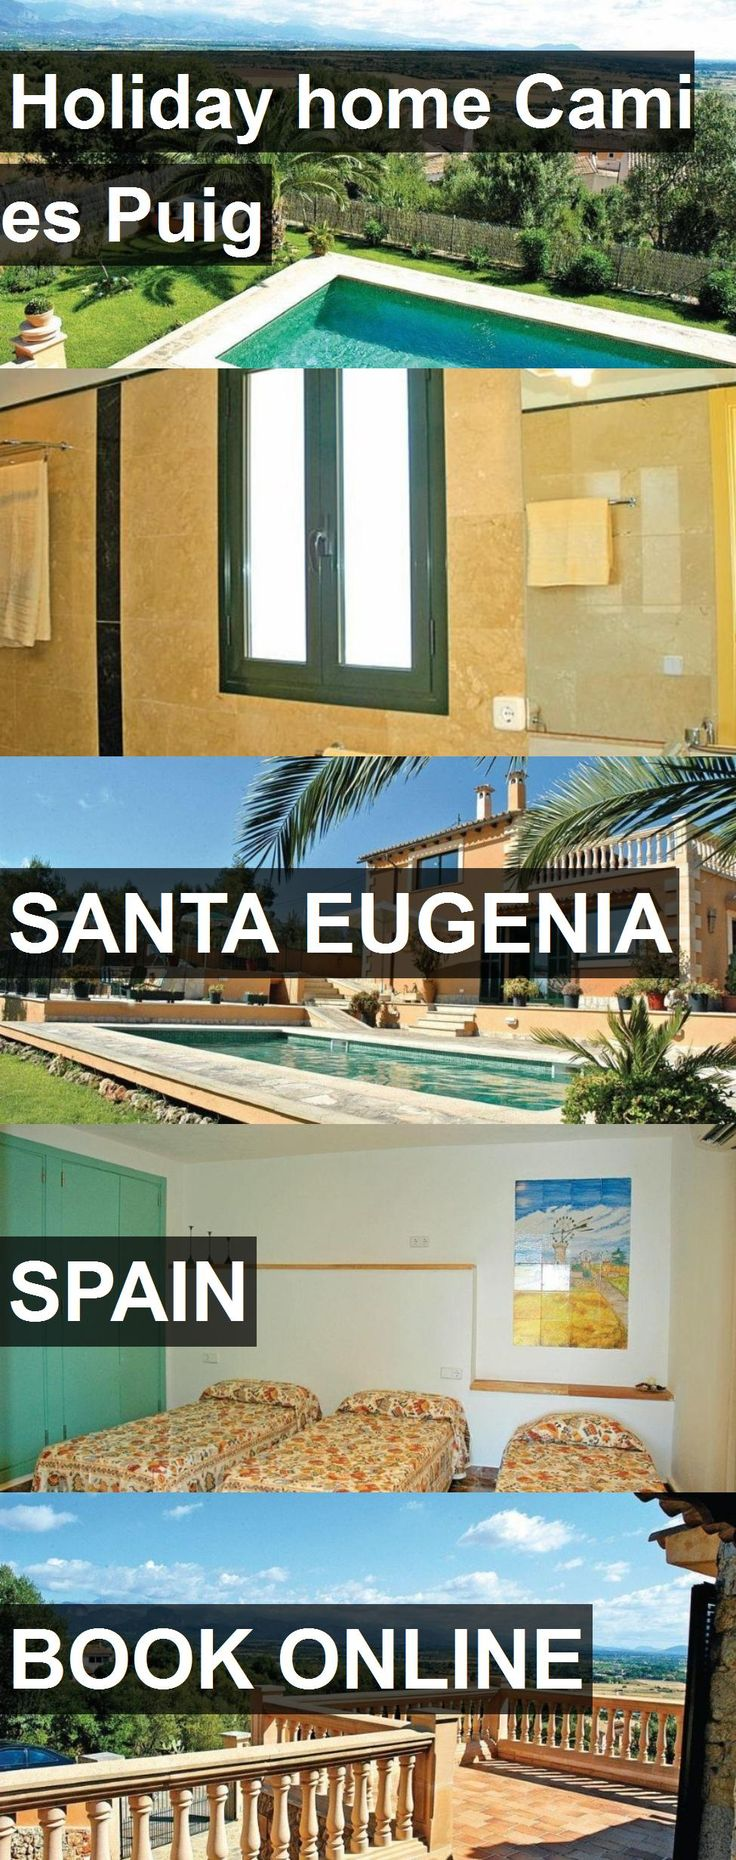 Hotel Holiday home Cami es Puig in Santa Eugenia, Spain. For more information, photos, reviews and best prices please follow the link. #Spain #SantaEugenia #travel #vacation #hotel